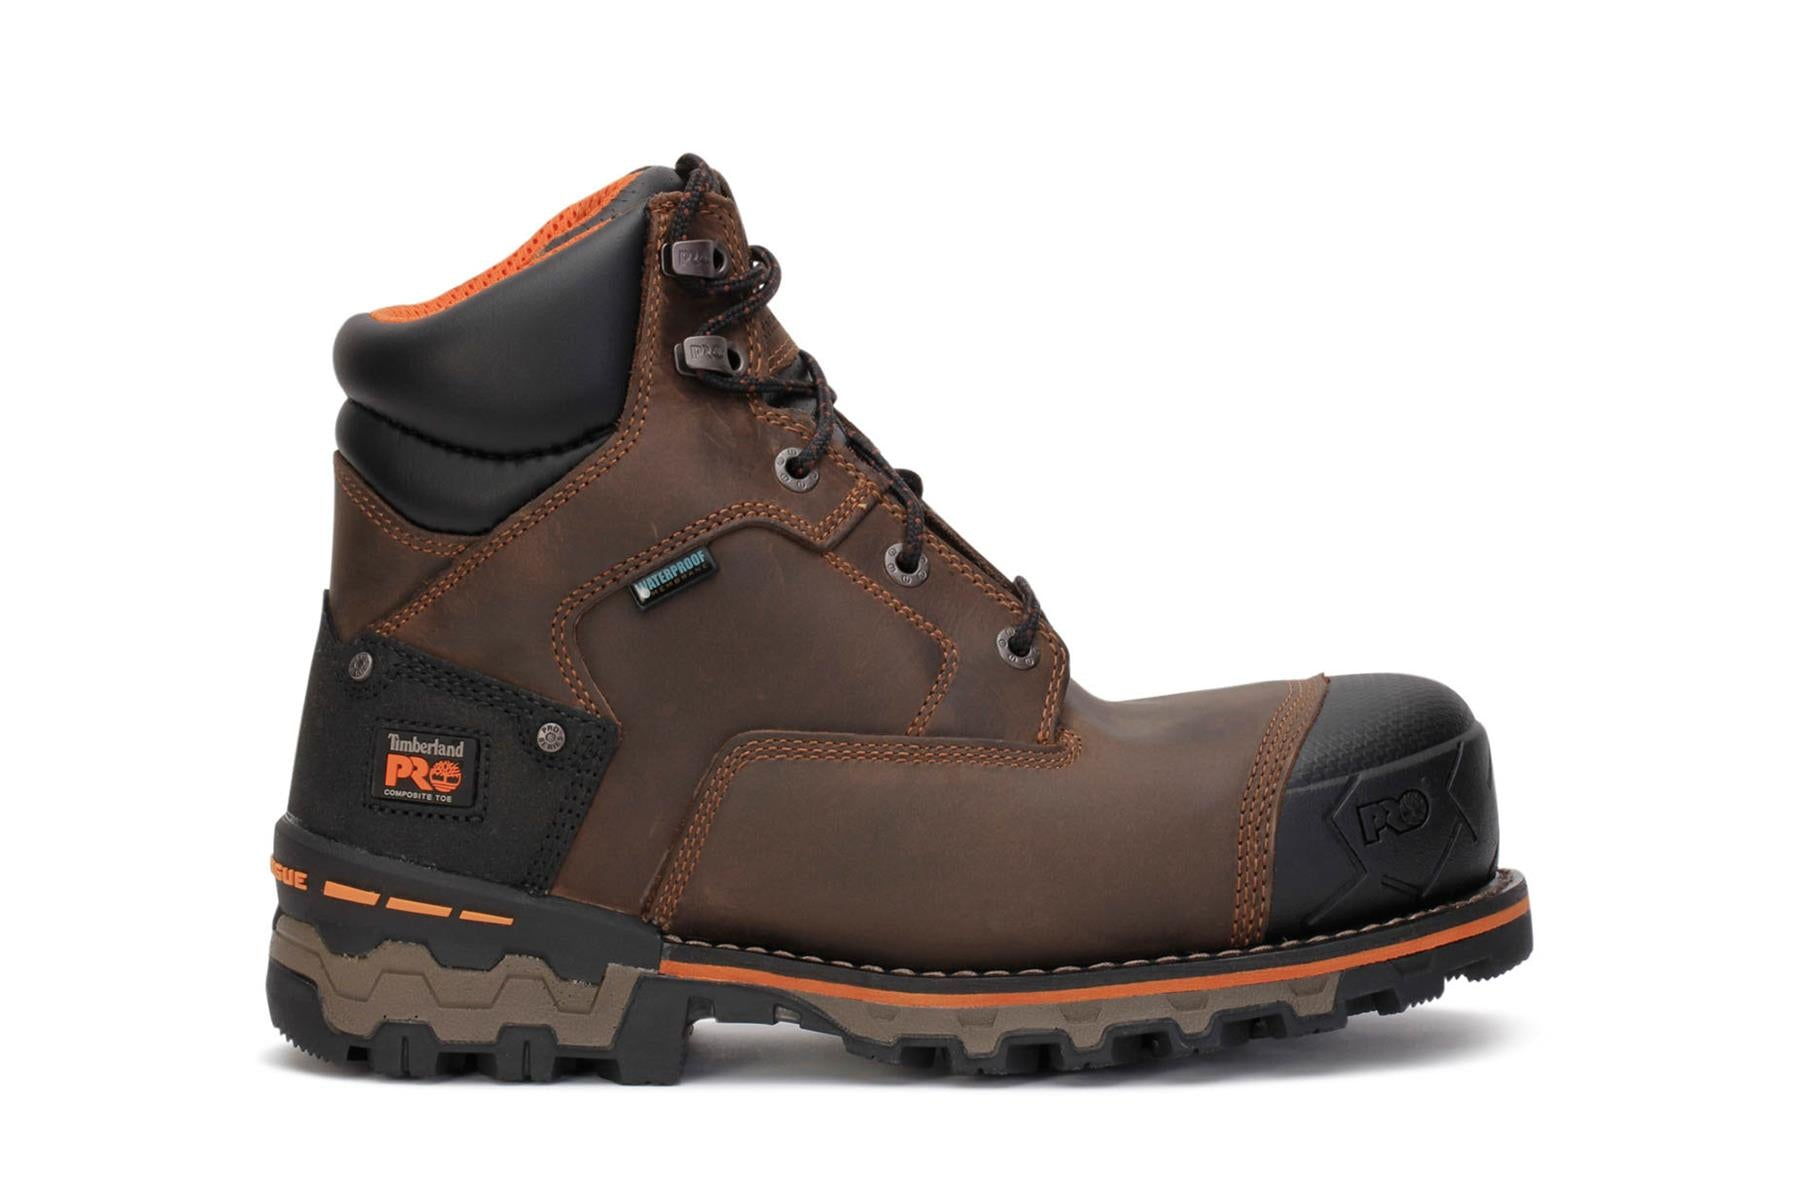 timberland-pro-mens-boondock-6-composite-safety-toe-work-boots-brown-92615-main